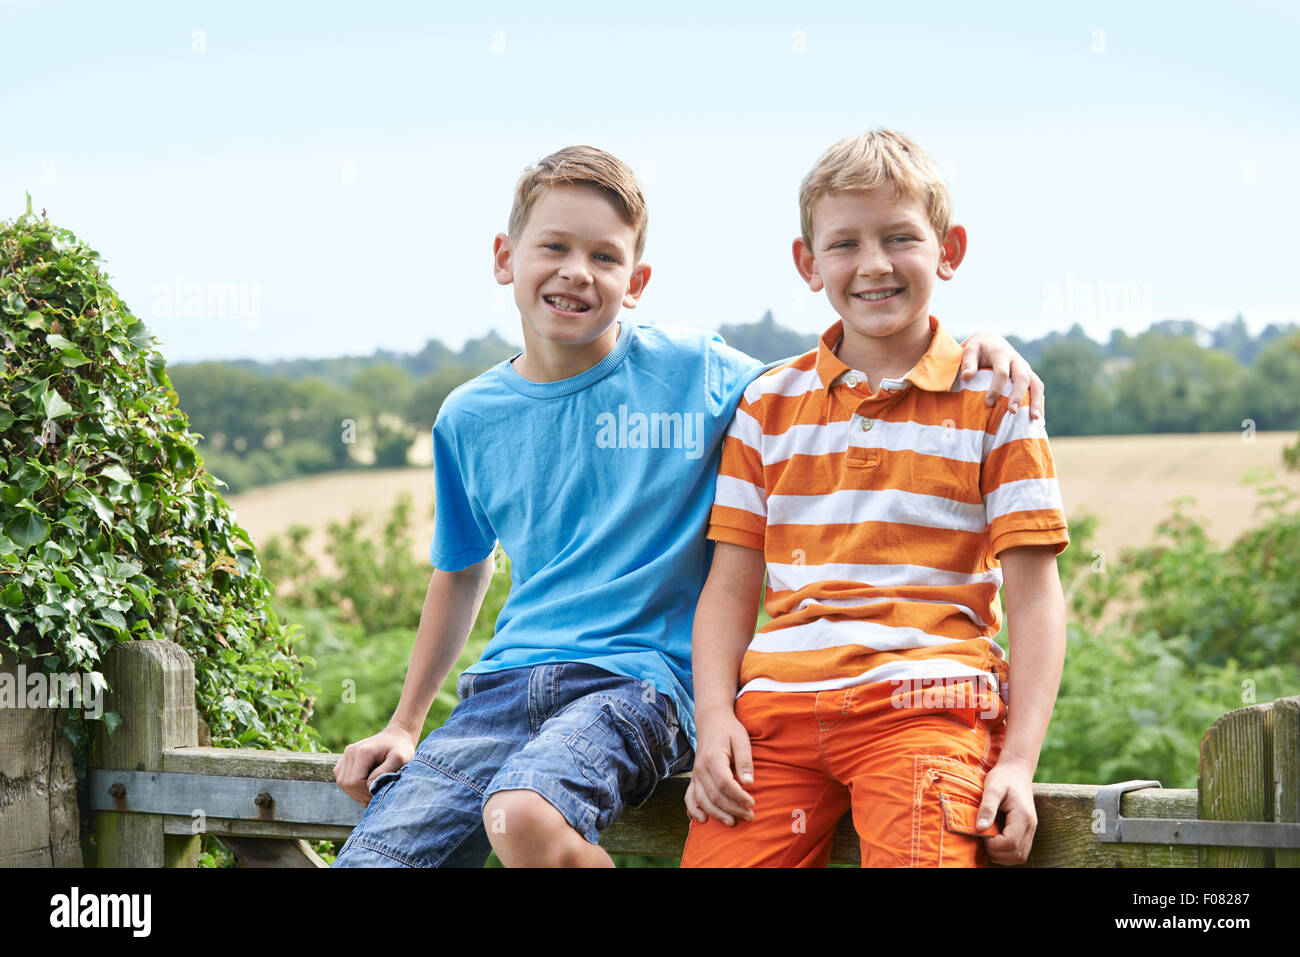 Portrait Of Two Boys Sitting On Gate Together - Stock Image